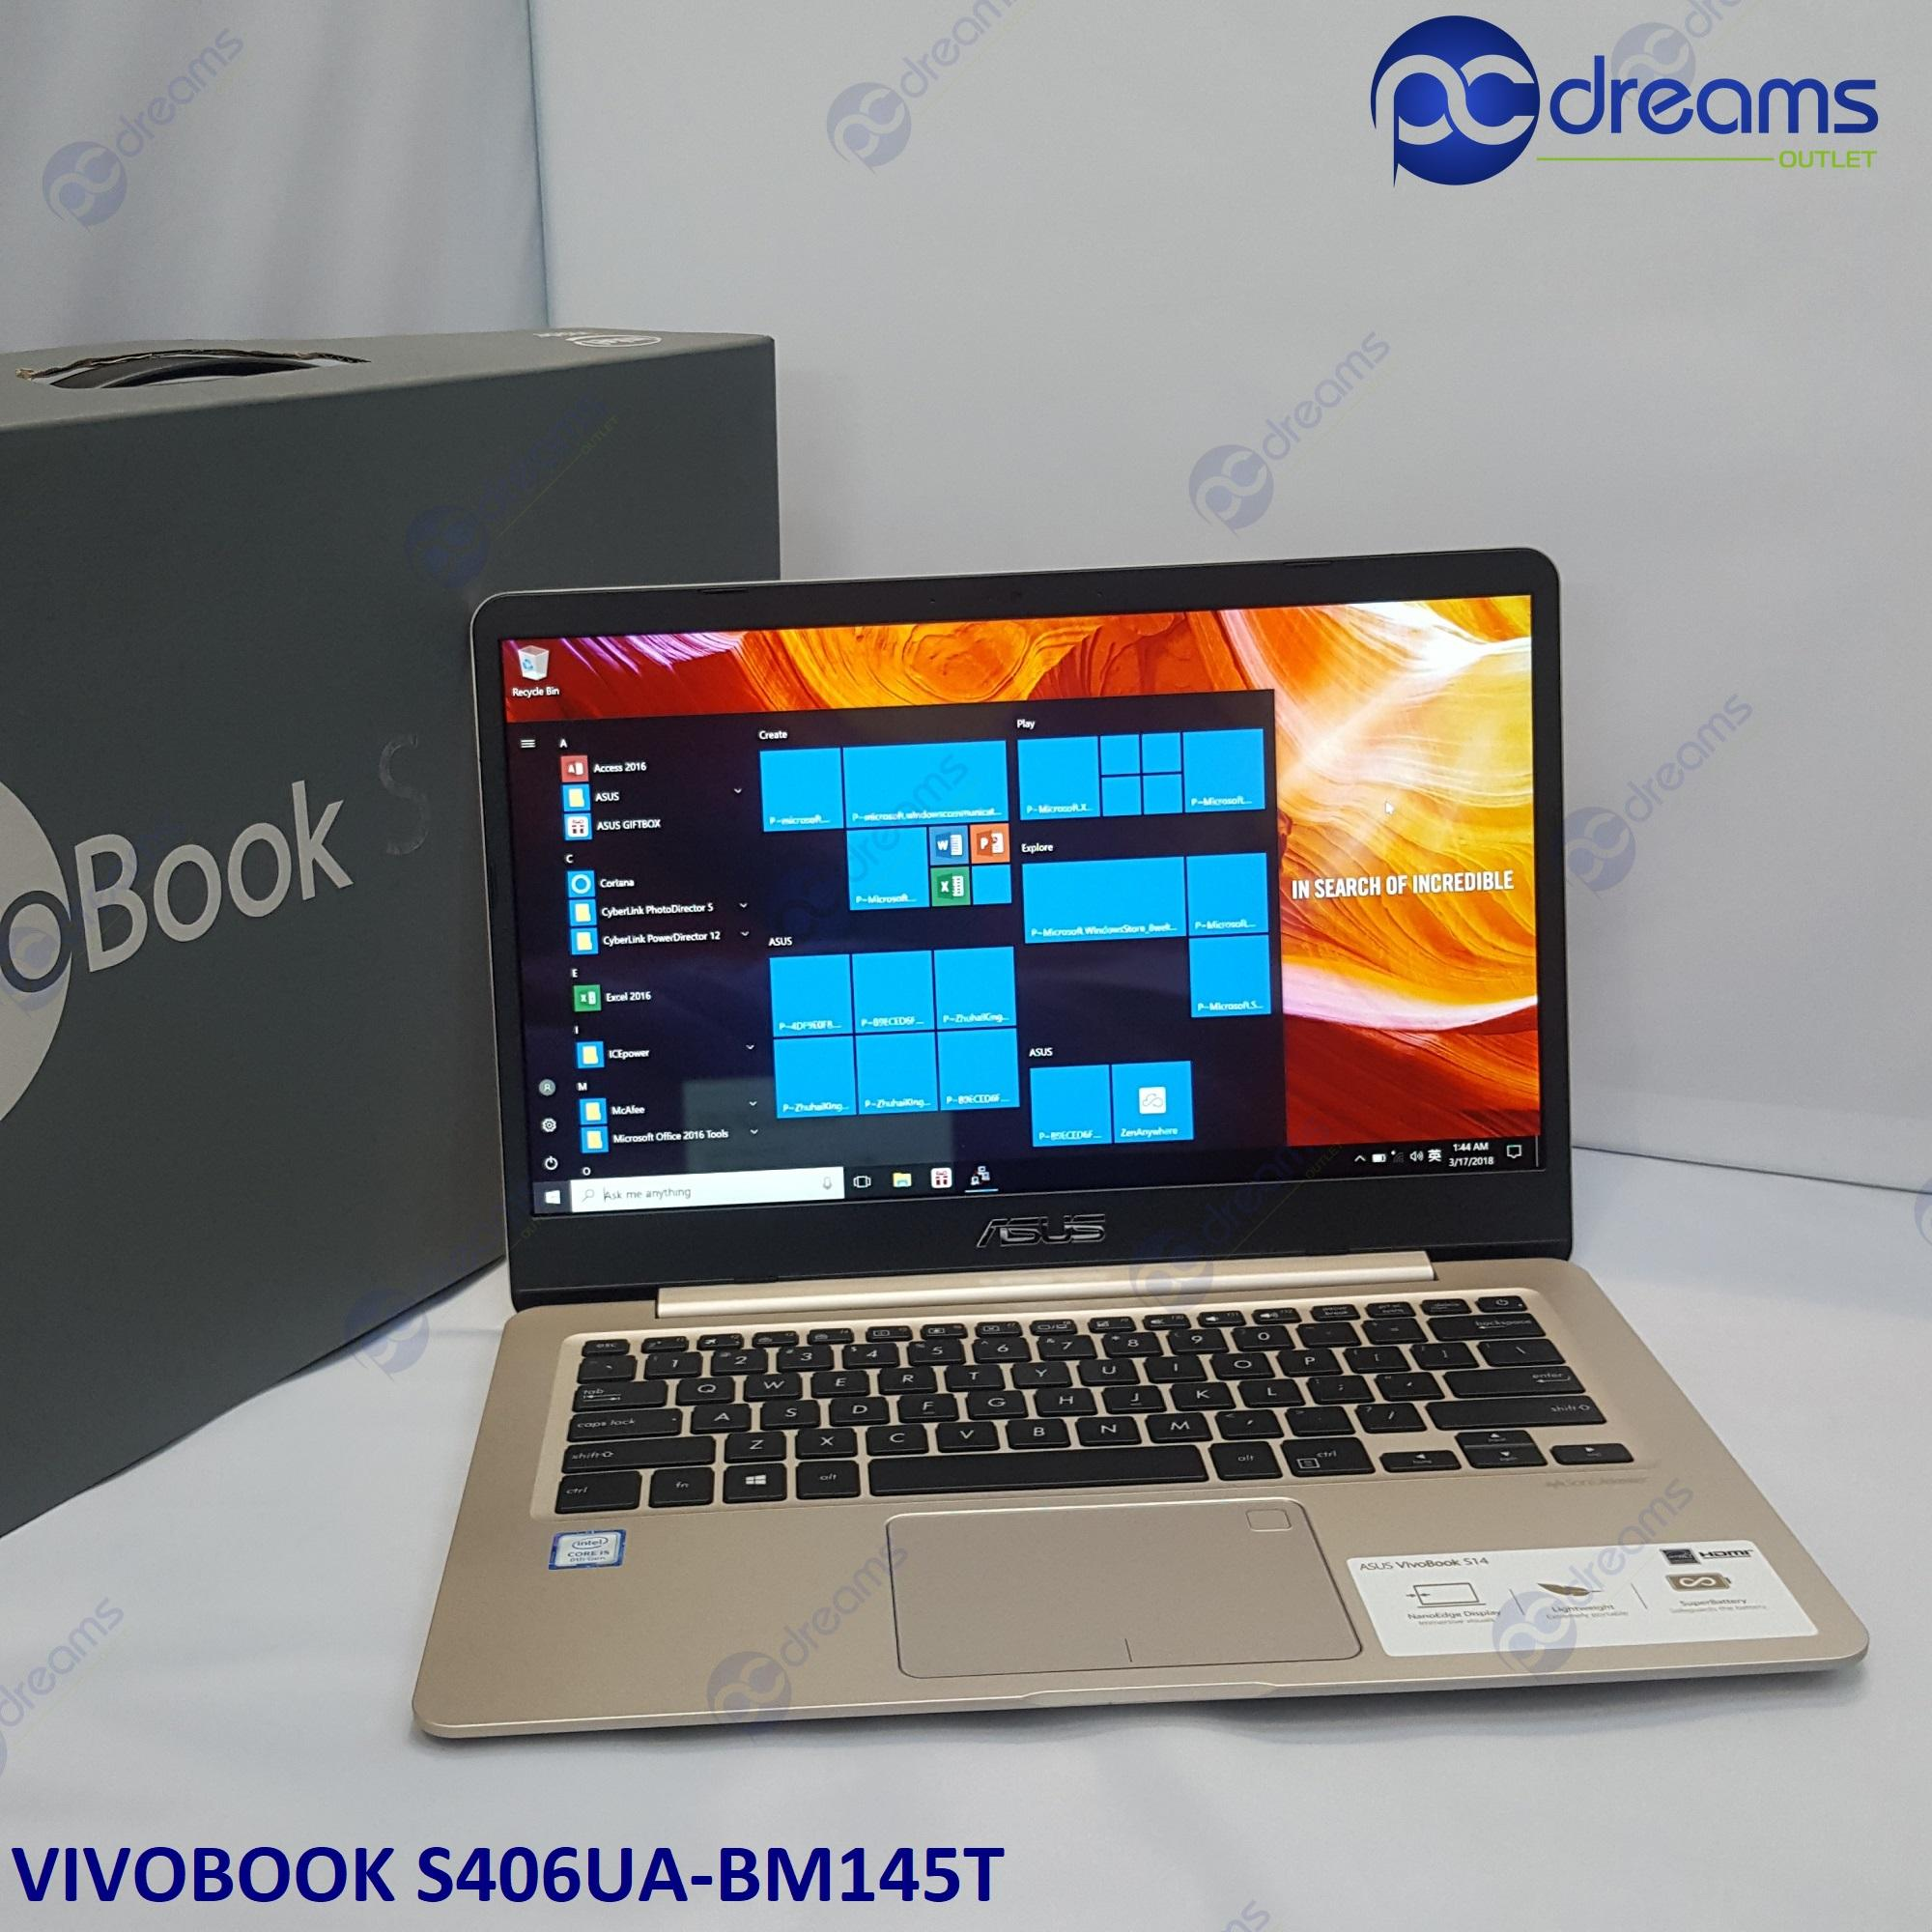 "ASUS VIVOBOOK S406UA-BM145T i7-8550U/8GB/512GB SSD/14.0"" FHD IPS [Premium Refreshed]"